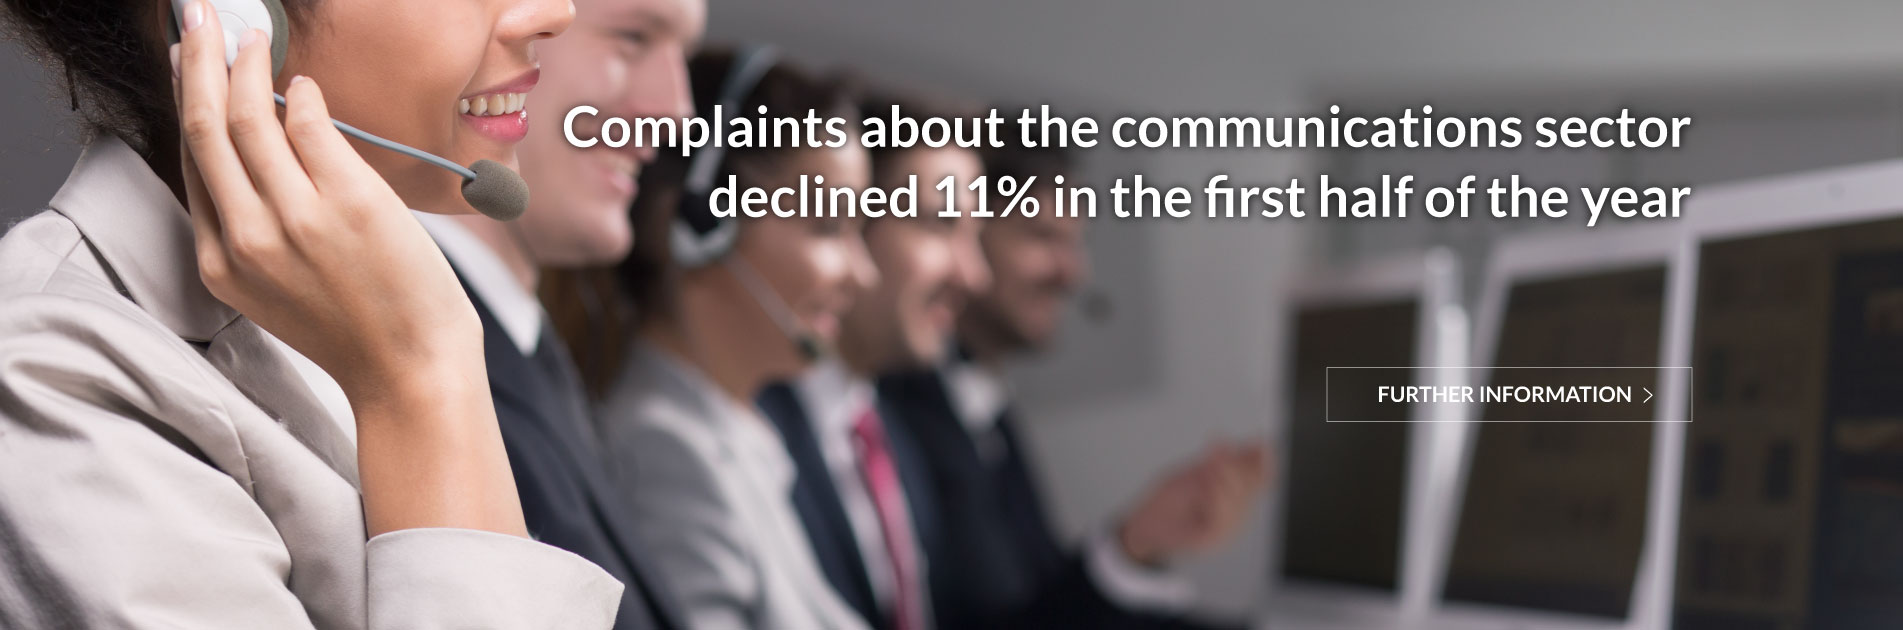 Users of communications services submitted around 43 thousand complaints in the first half of the year, 32 thousand of which concerned electronic communications and 11 thousand the postal sector.